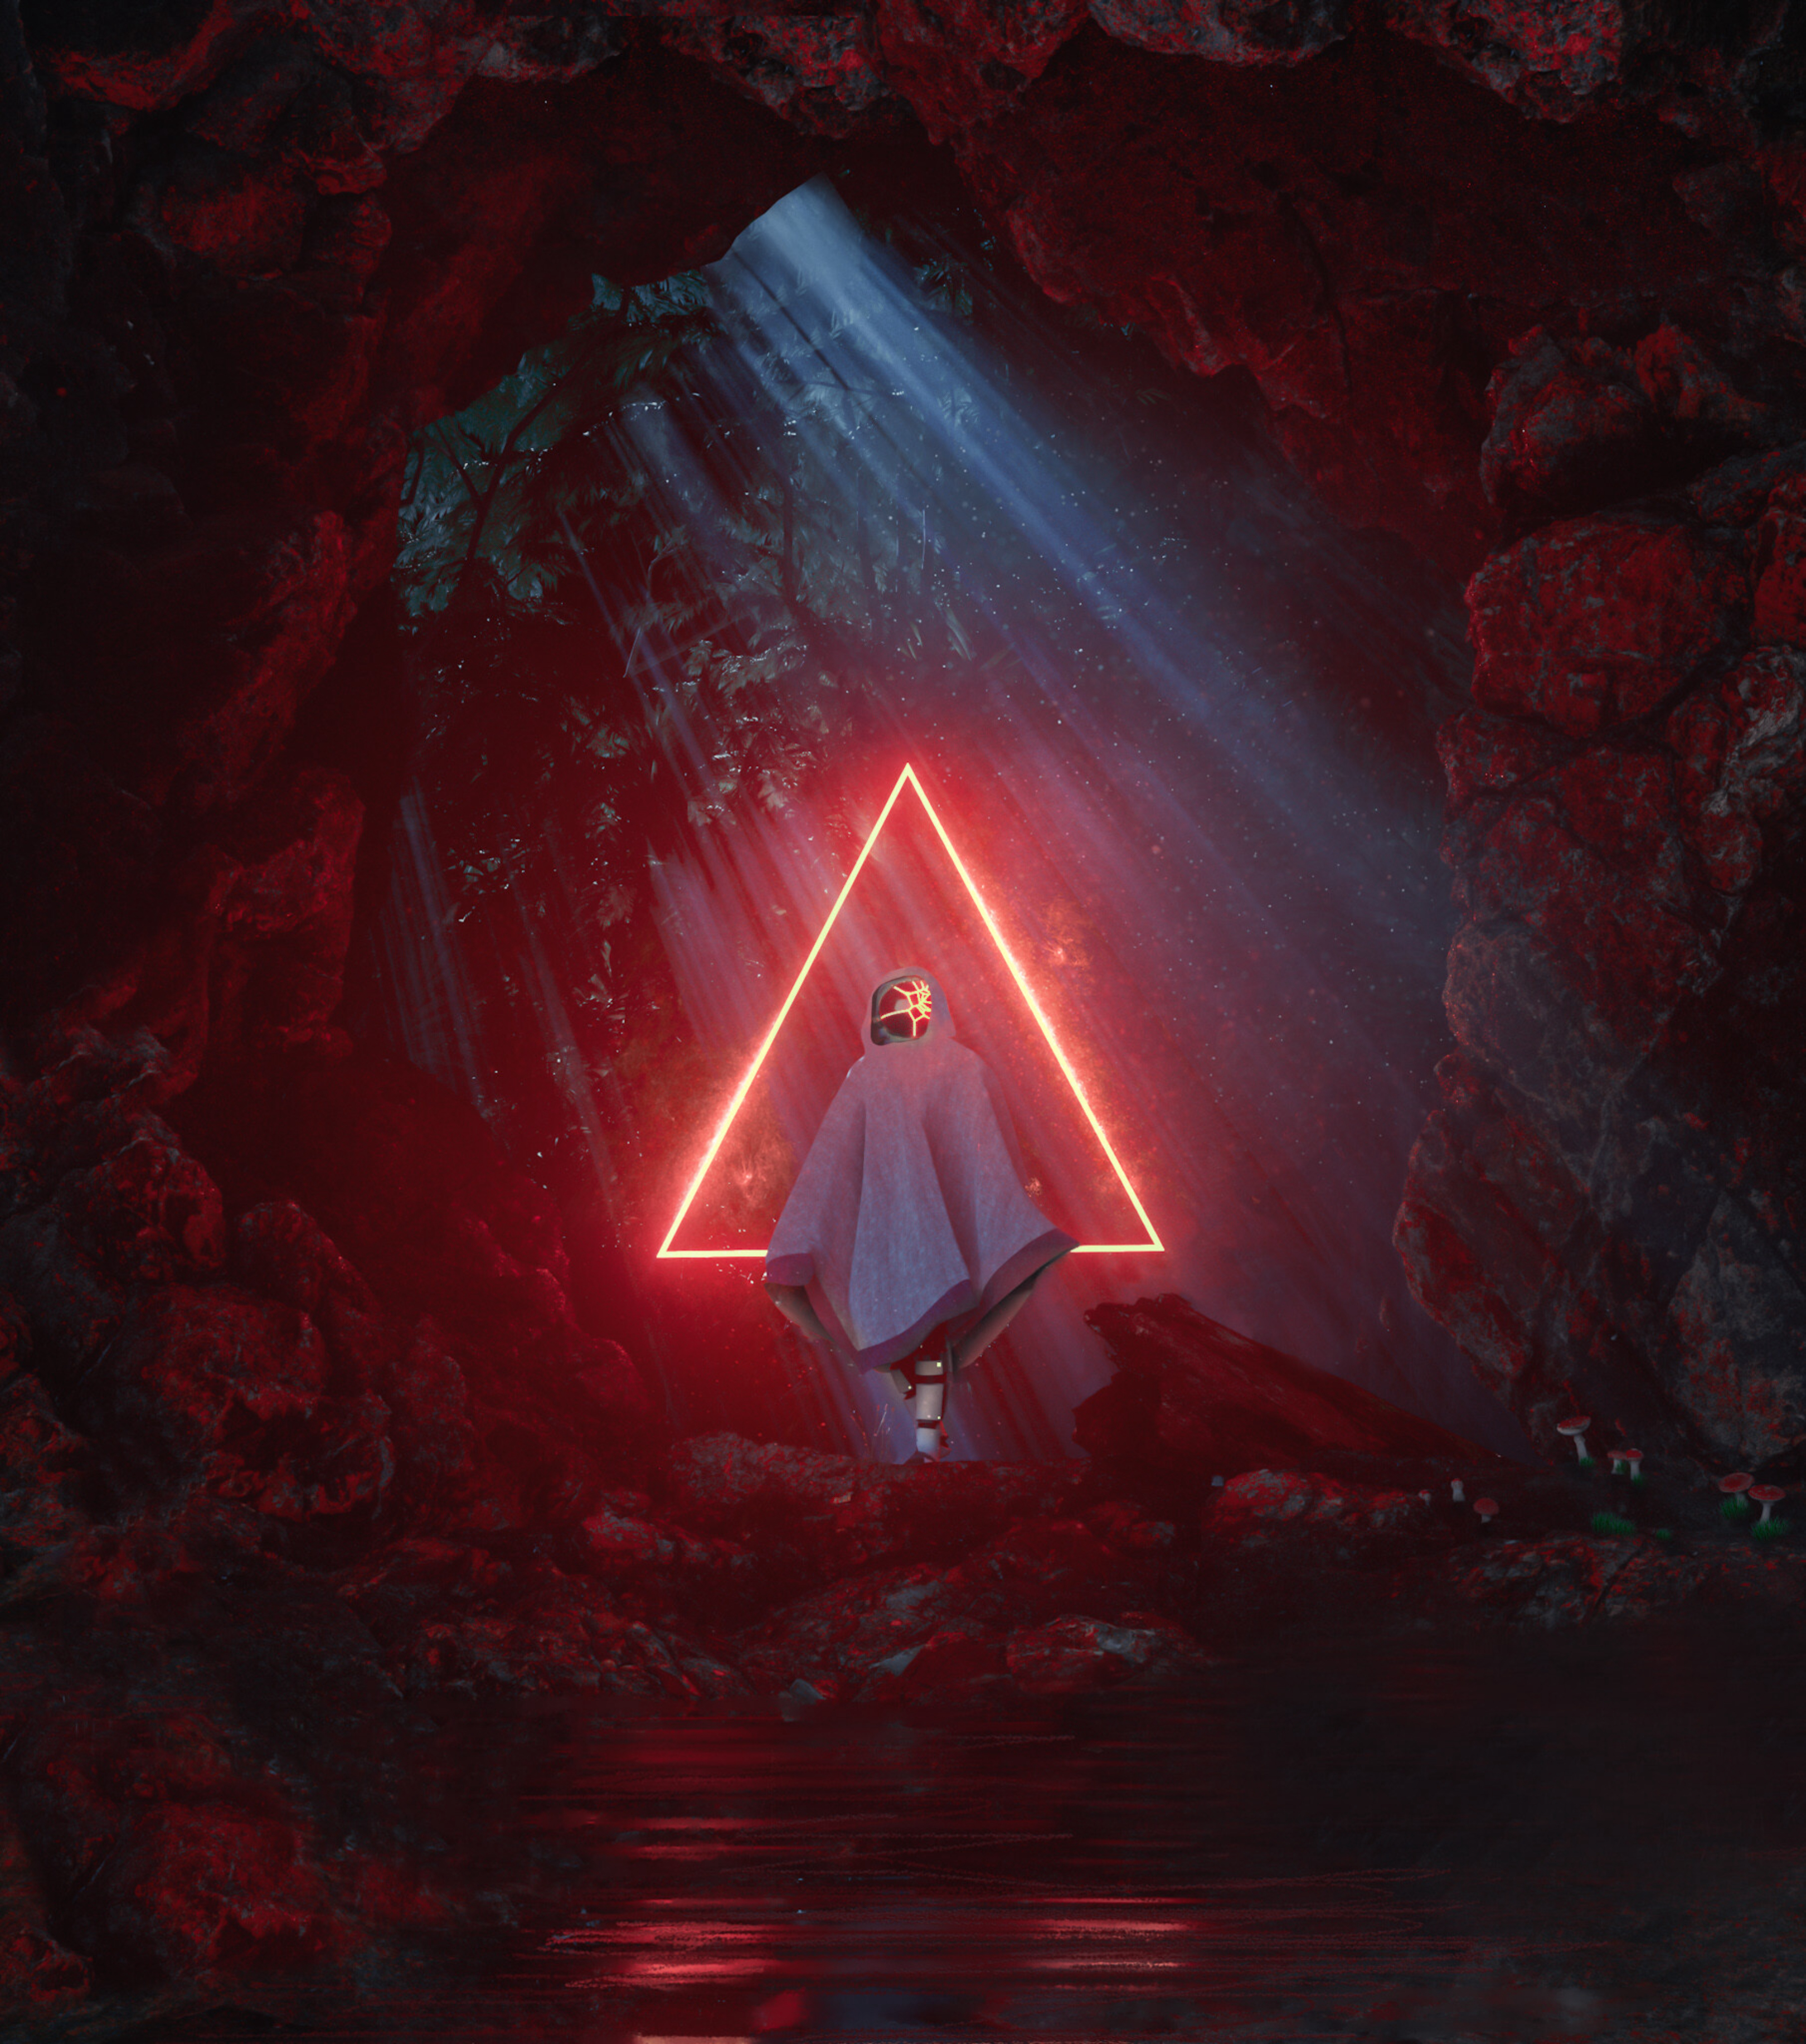 77018 download wallpaper Shine, Light, Miscellanea, Miscellaneous, Glow, Cave, Triangle, Ghost screensavers and pictures for free